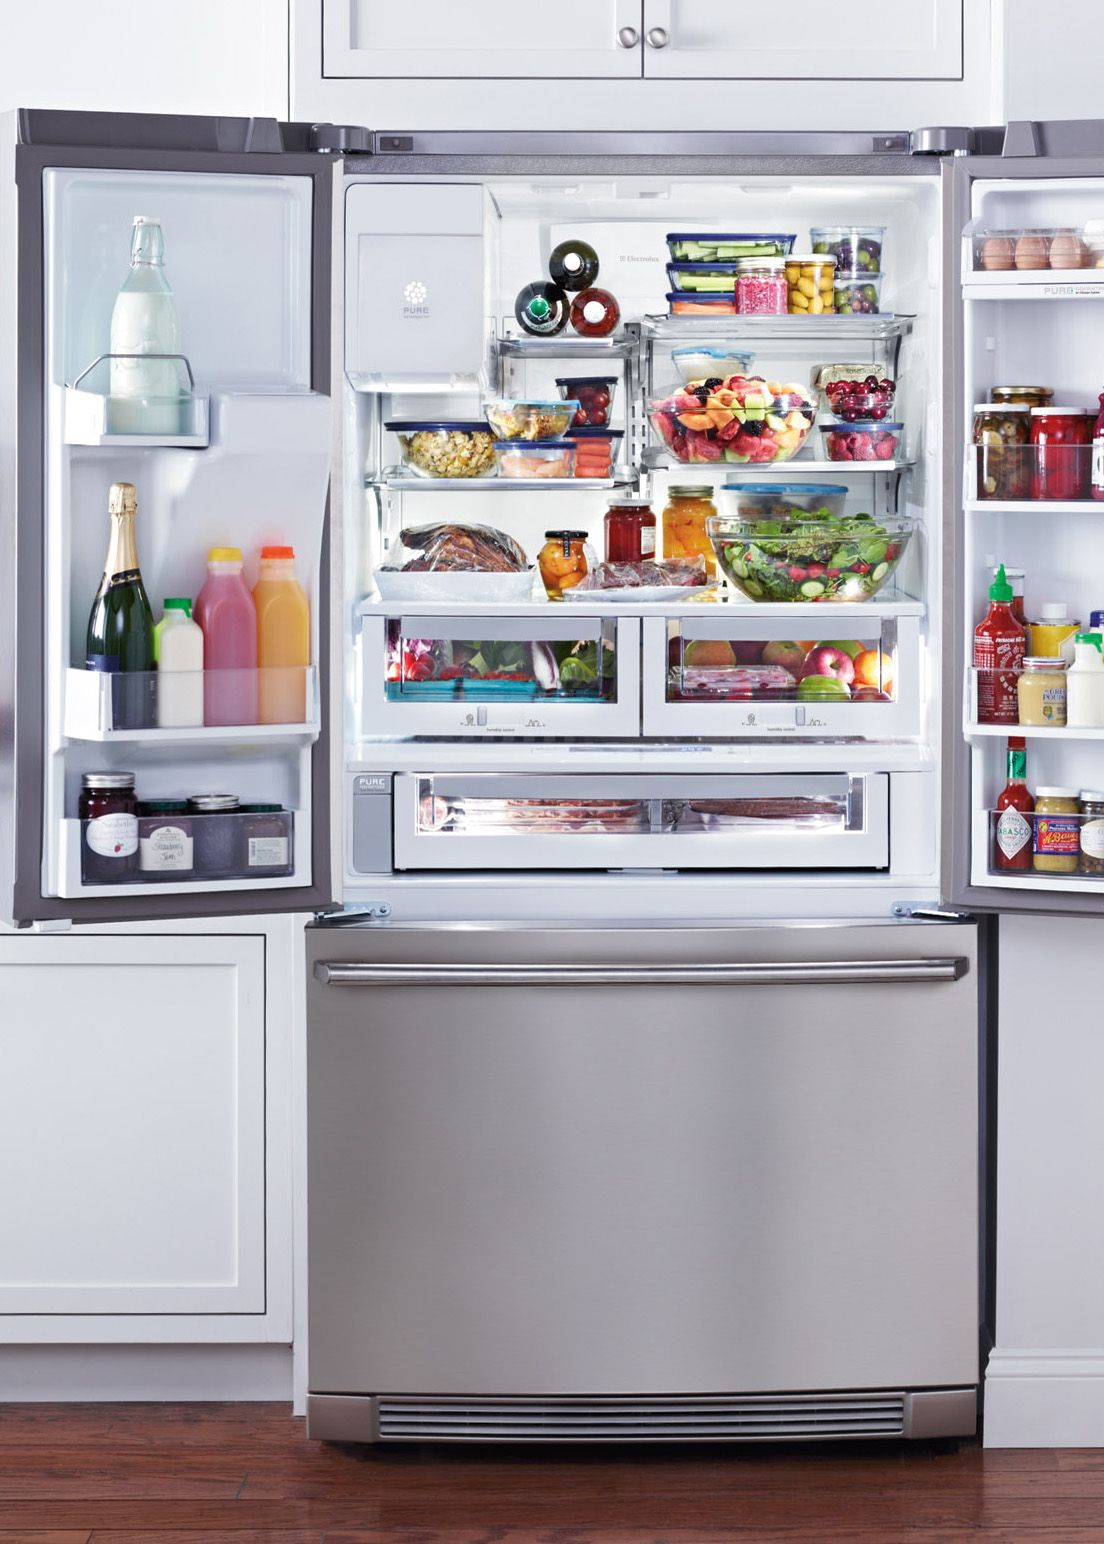 Electrolux Refrigerators Keep Everything From Fine Cheese To Fresh Veggies Stored At Just The